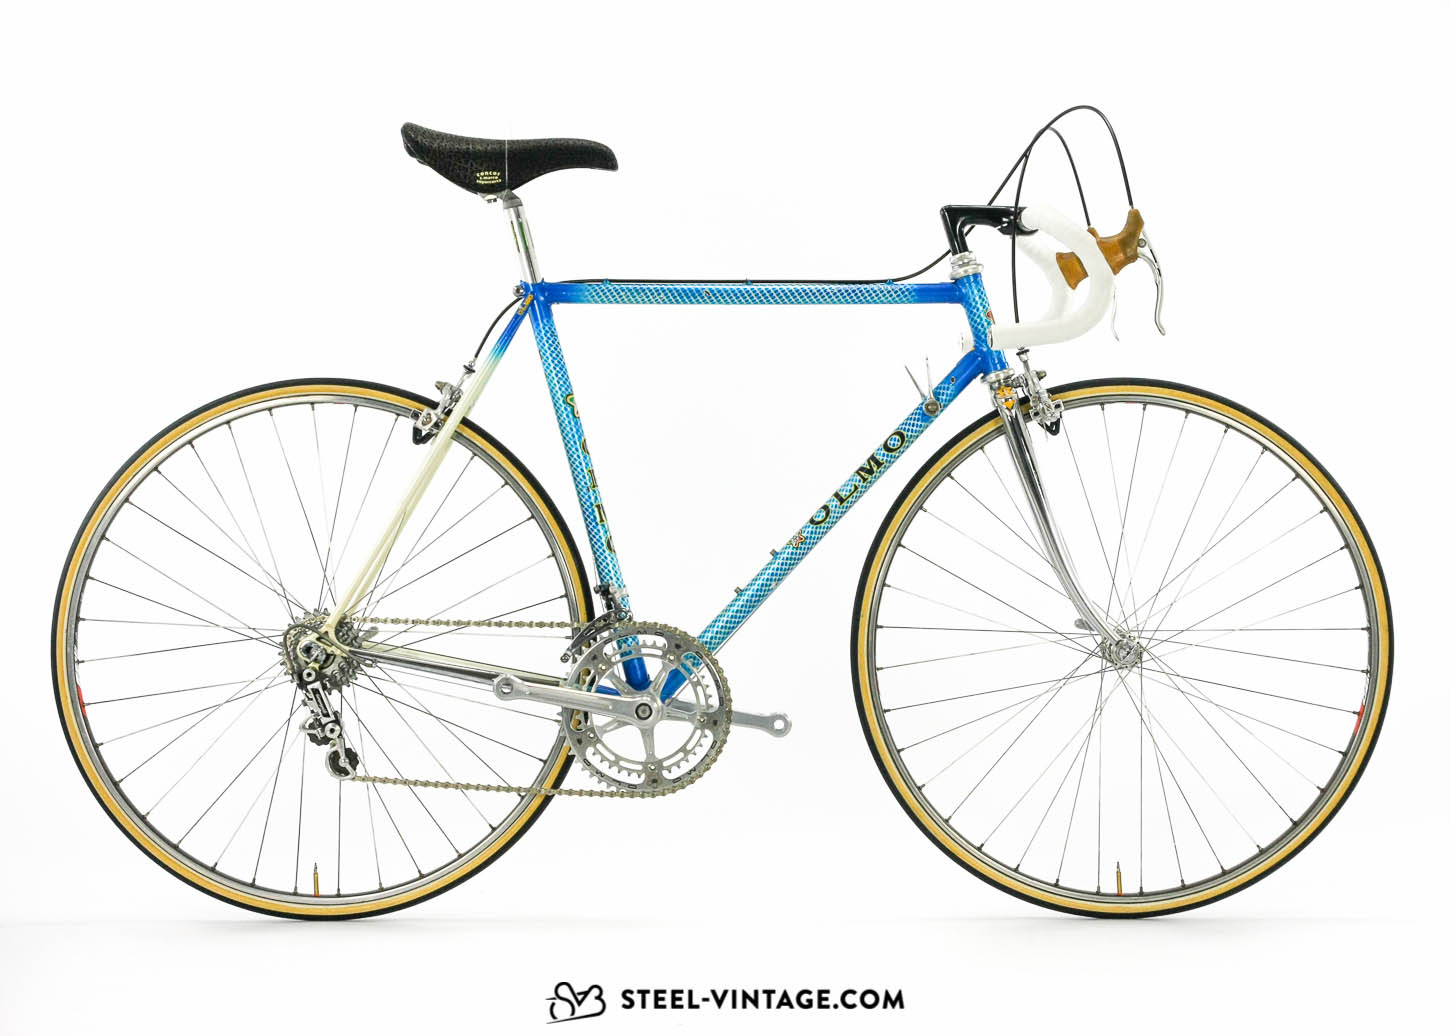 Olmo Competition Pantographed Eroica Bike 1980s